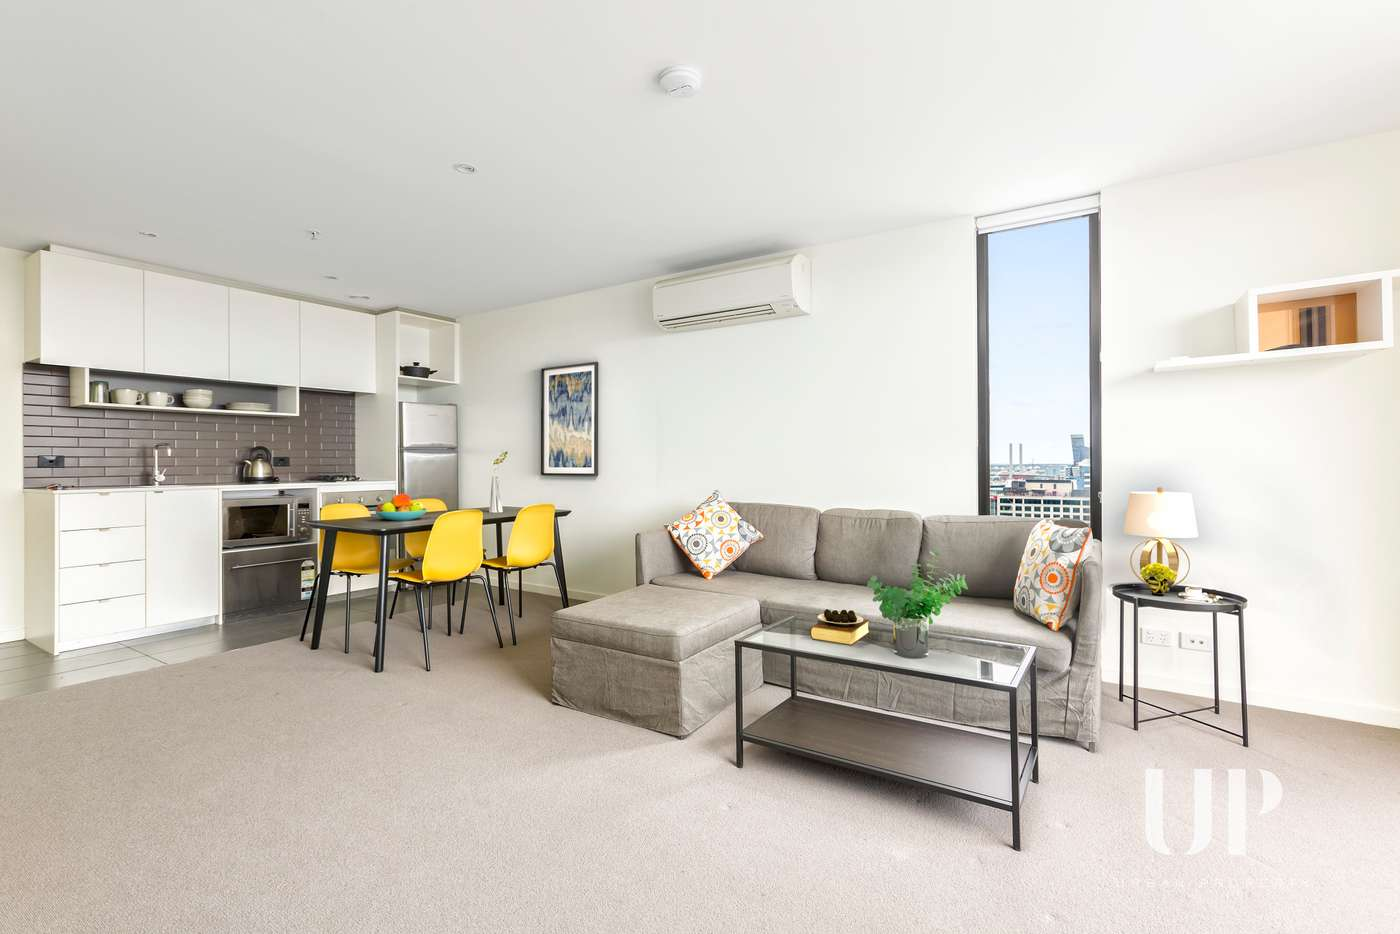 Fifth view of Homely apartment listing, 1701/243 Franklin Street, Melbourne VIC 3000